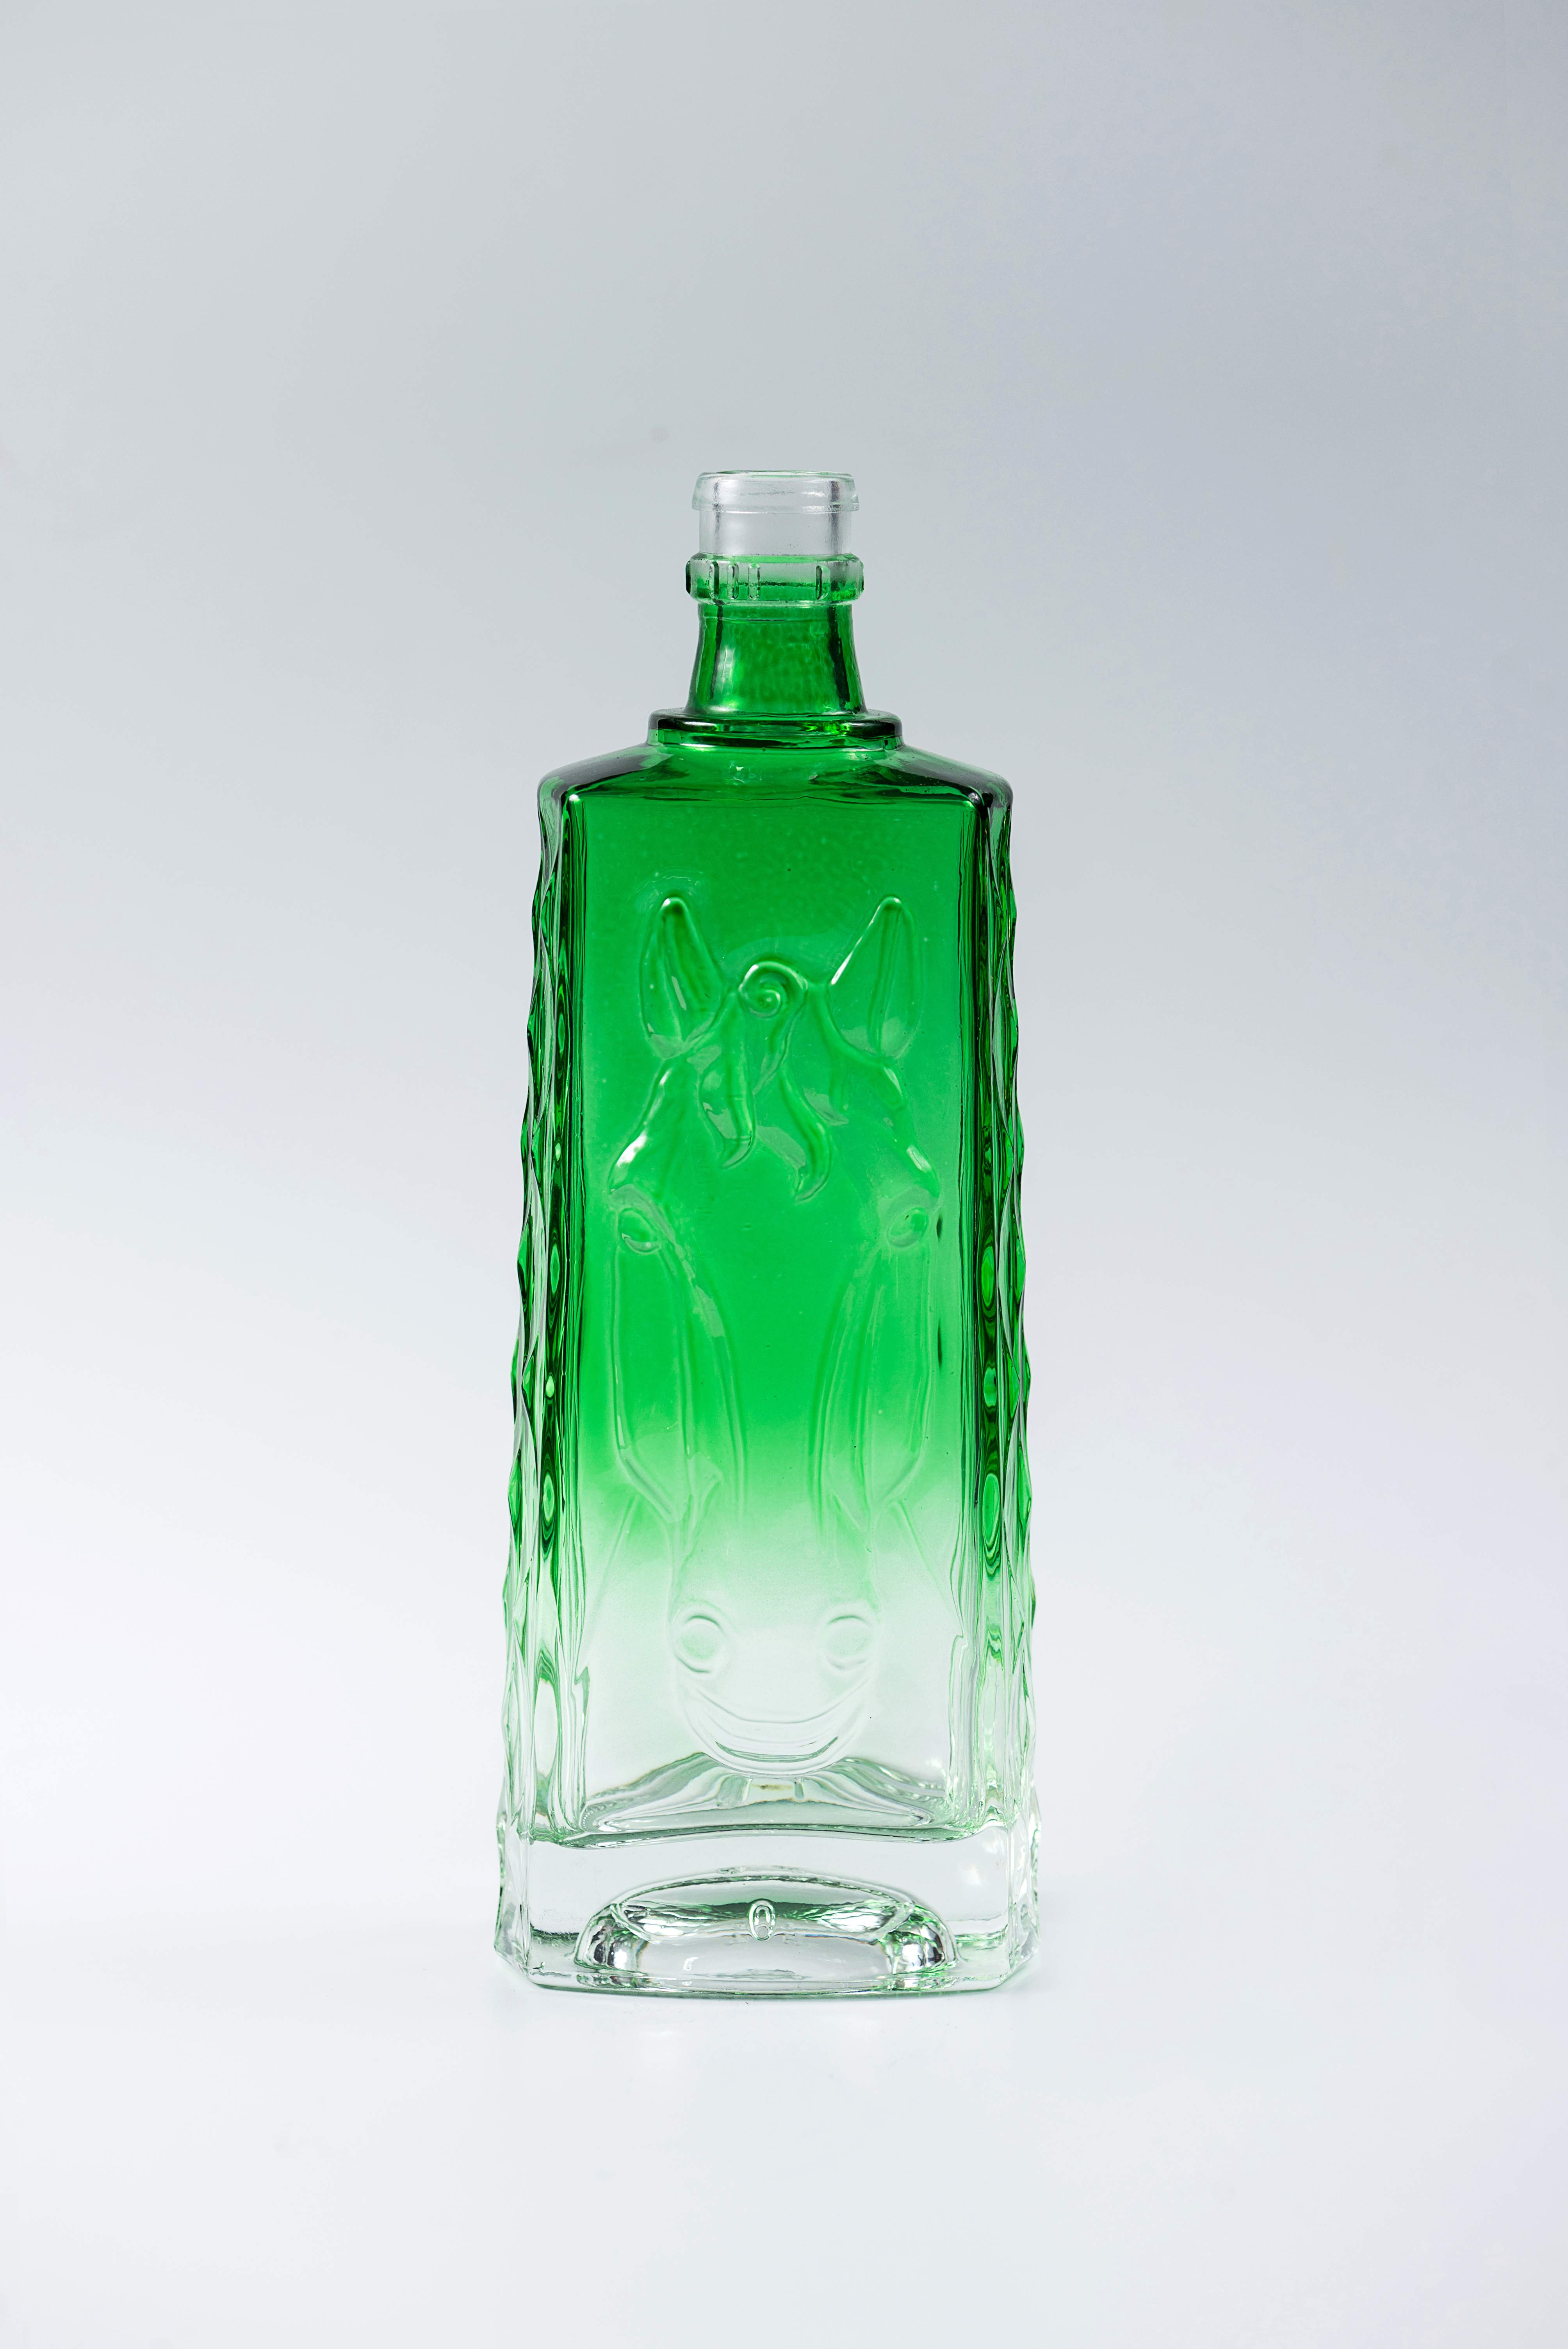 1000ml crystal glass vodka bottle